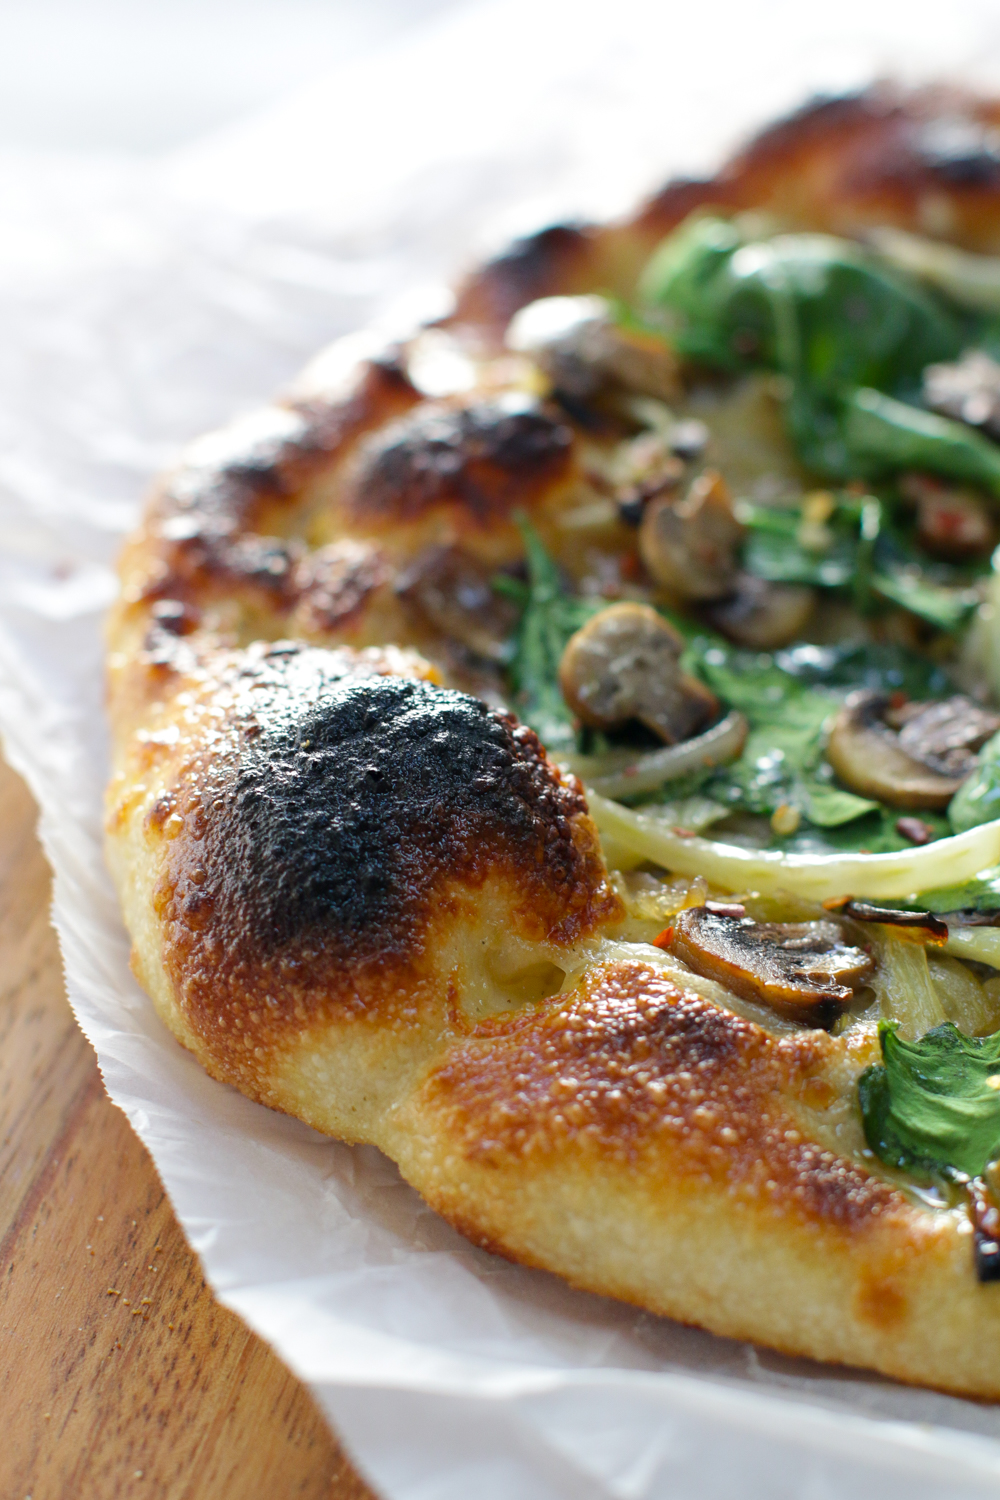 That charred up bubble, c'mon on people pay like $24 for that a fancy pizza place in San Francisco!